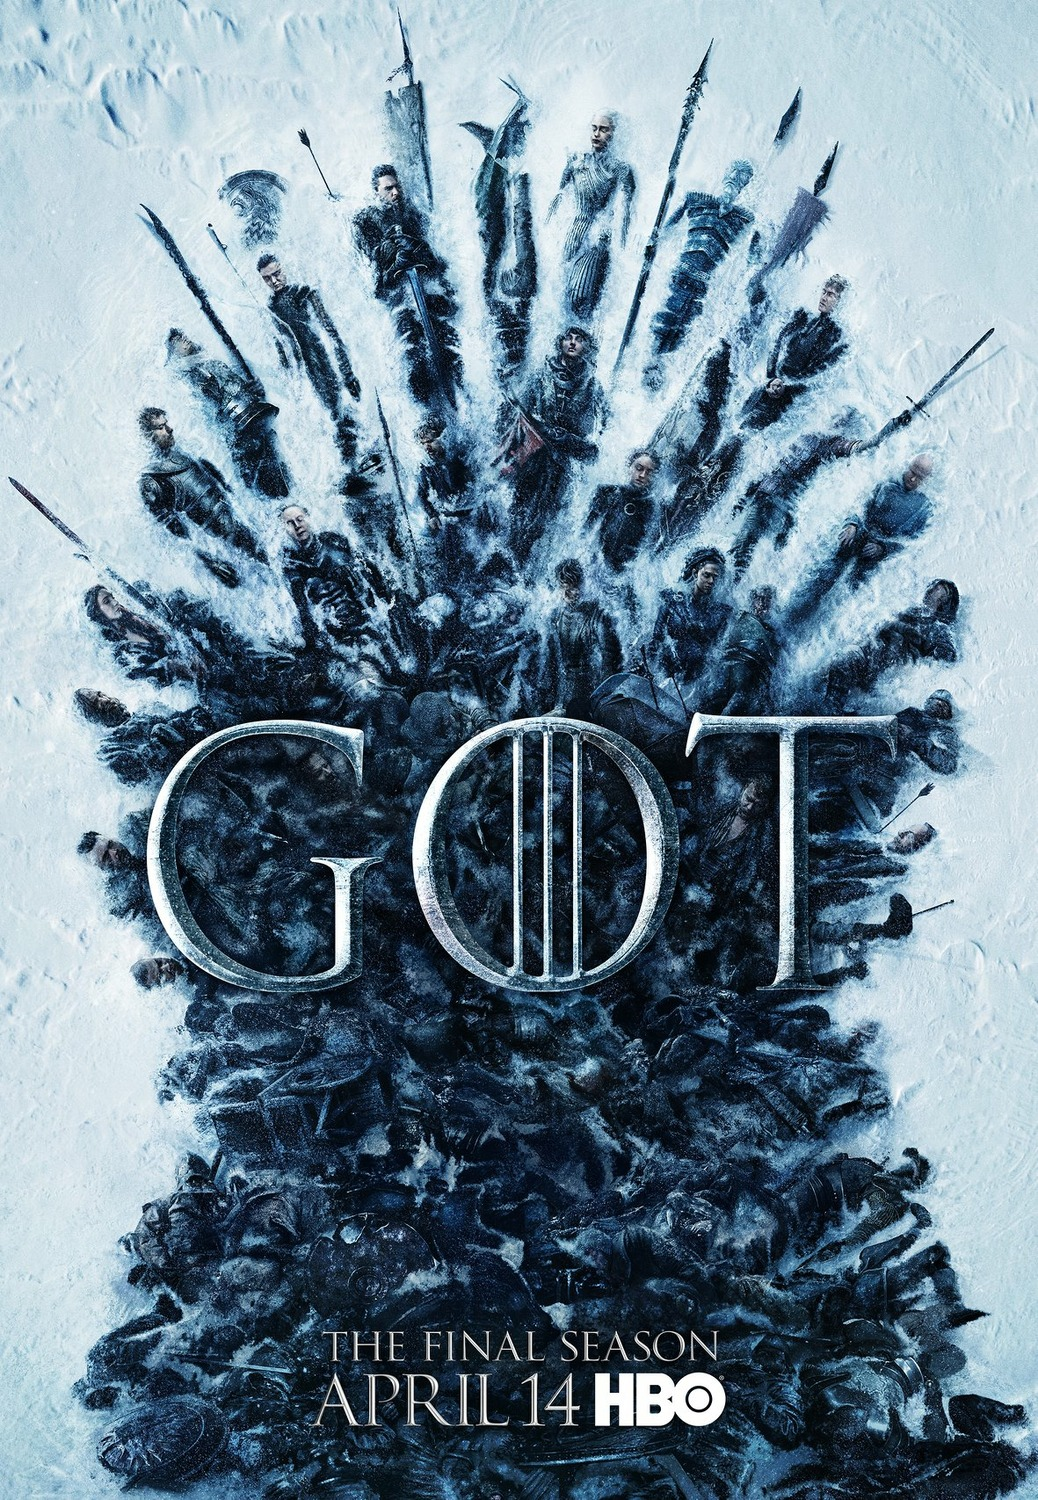 Game Of Thrones Season 8 review: this review is dark and full of spoilers.